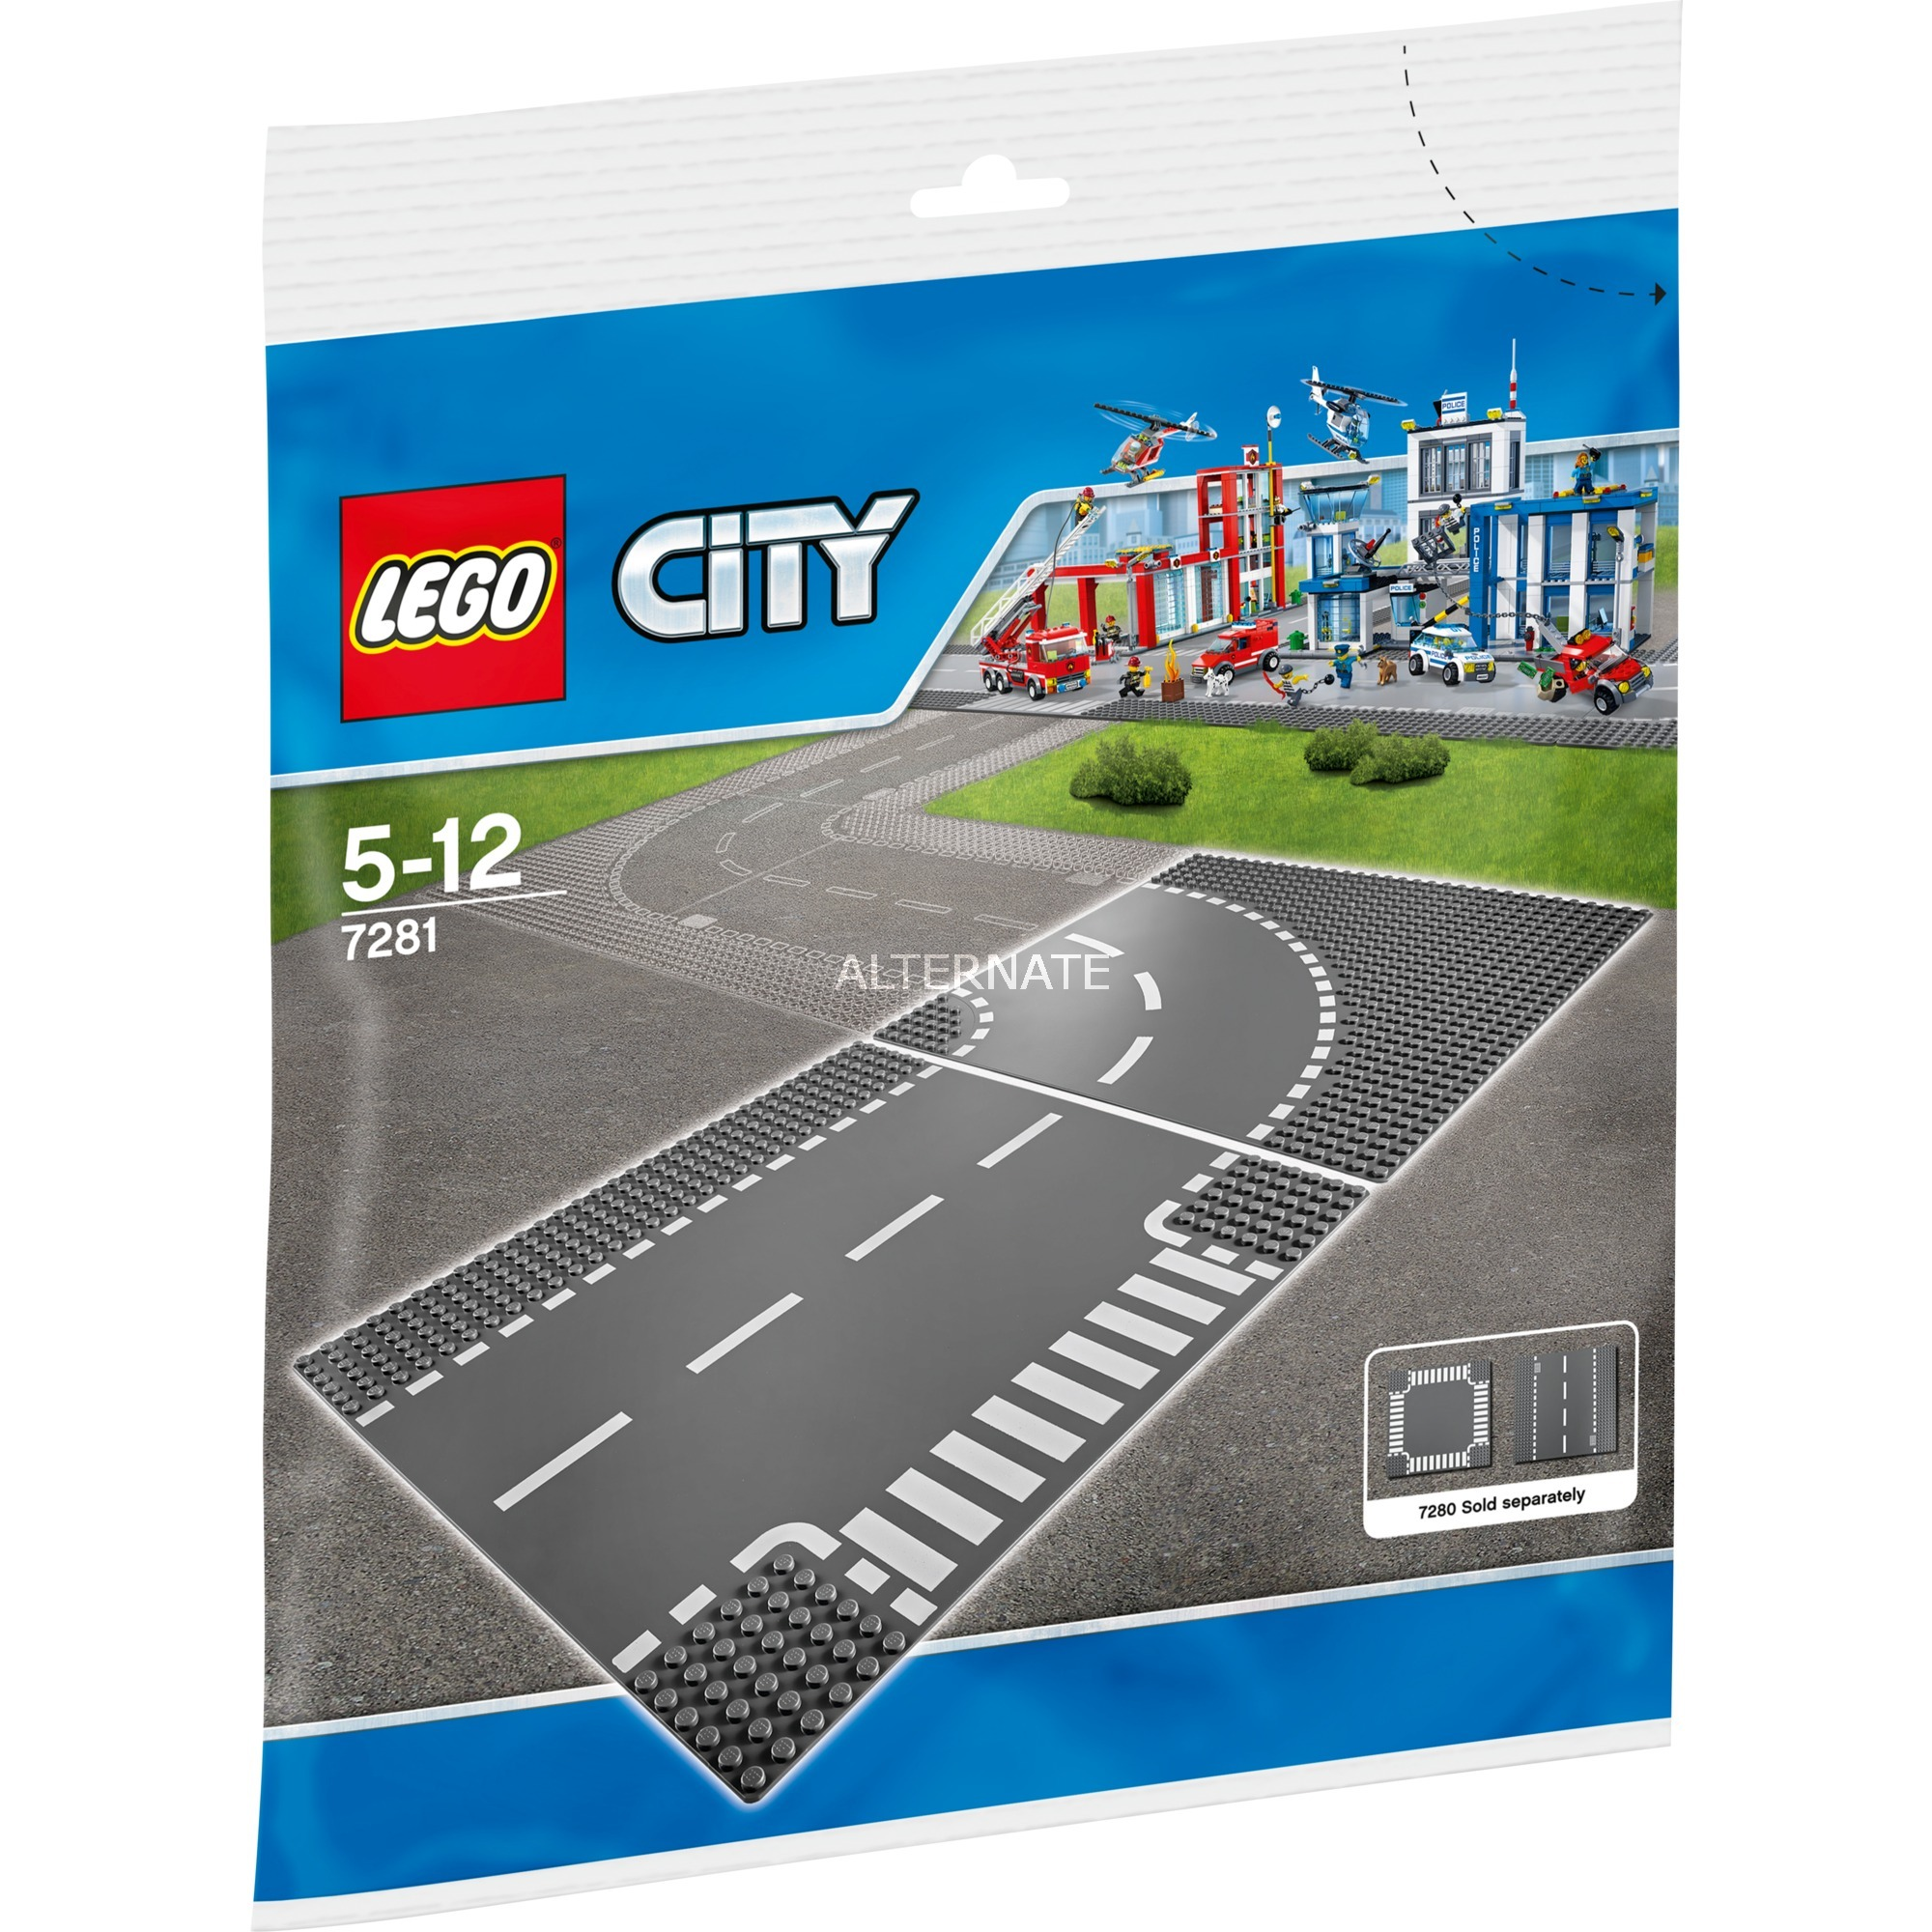 city-t-junction-curved-road-plates-bygge-legetoj